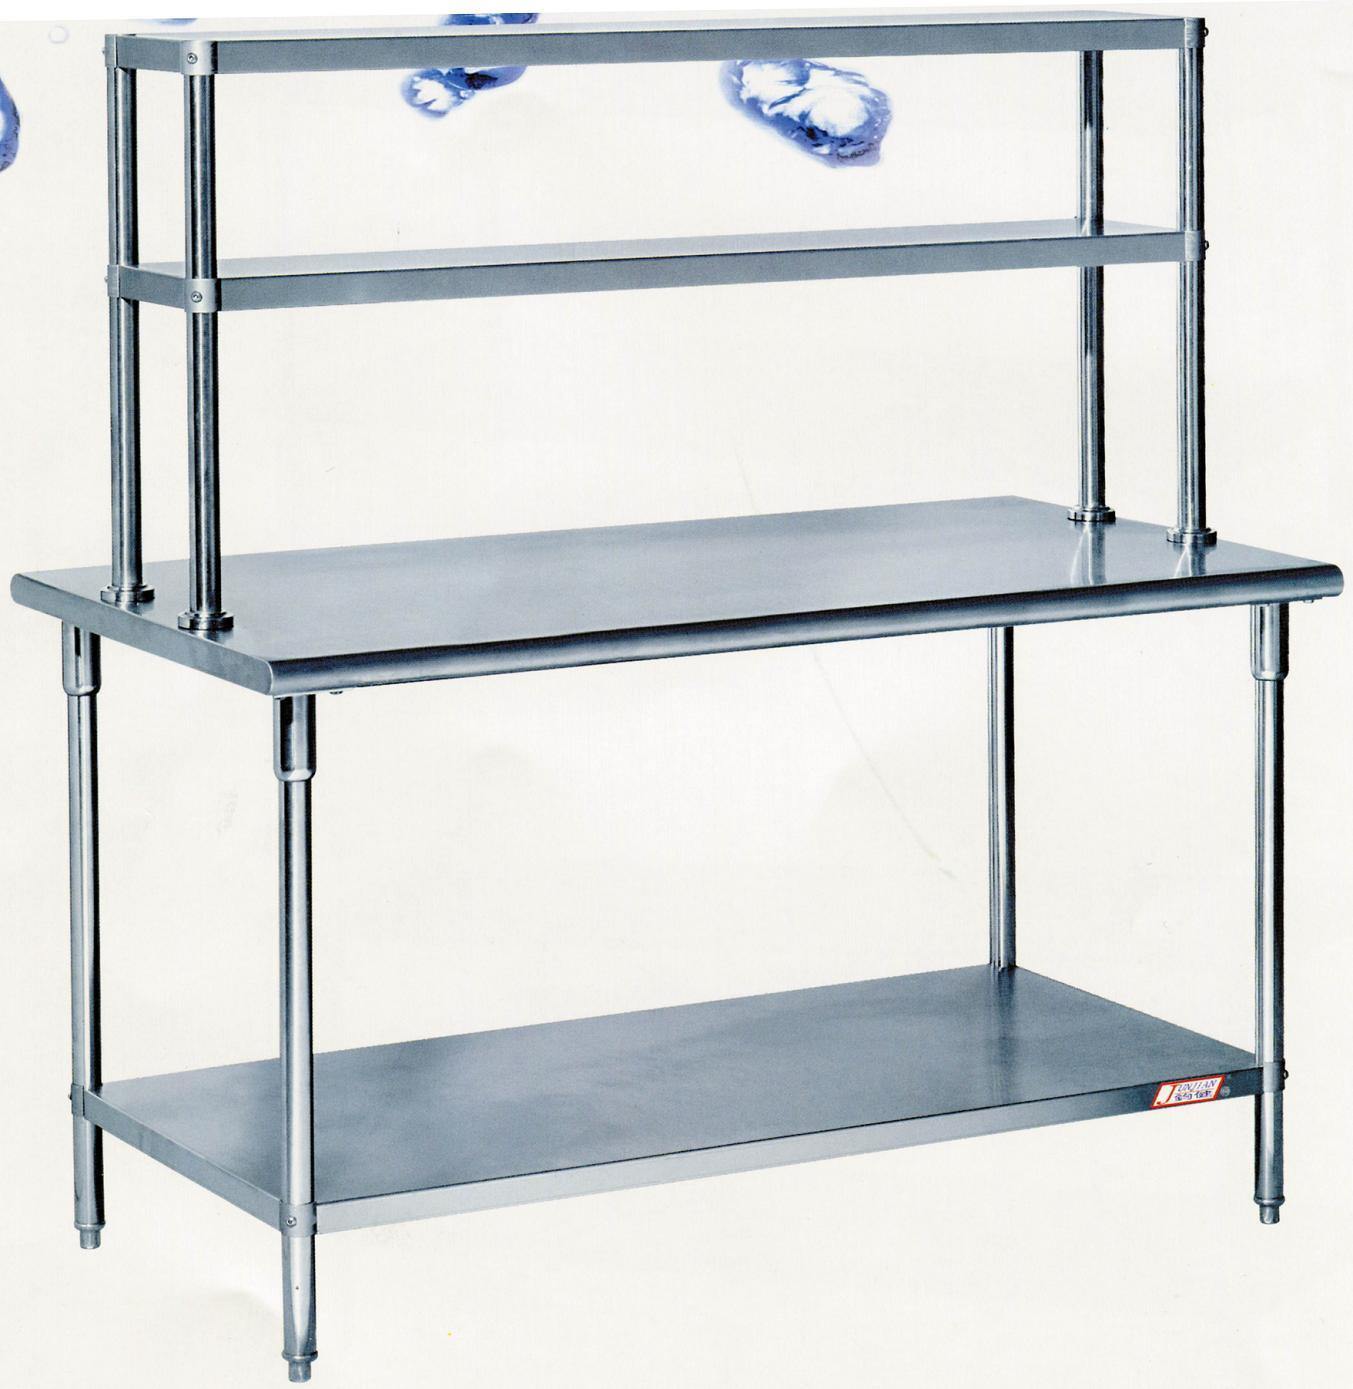 China Assembling Stainless Steel Work Table with ...